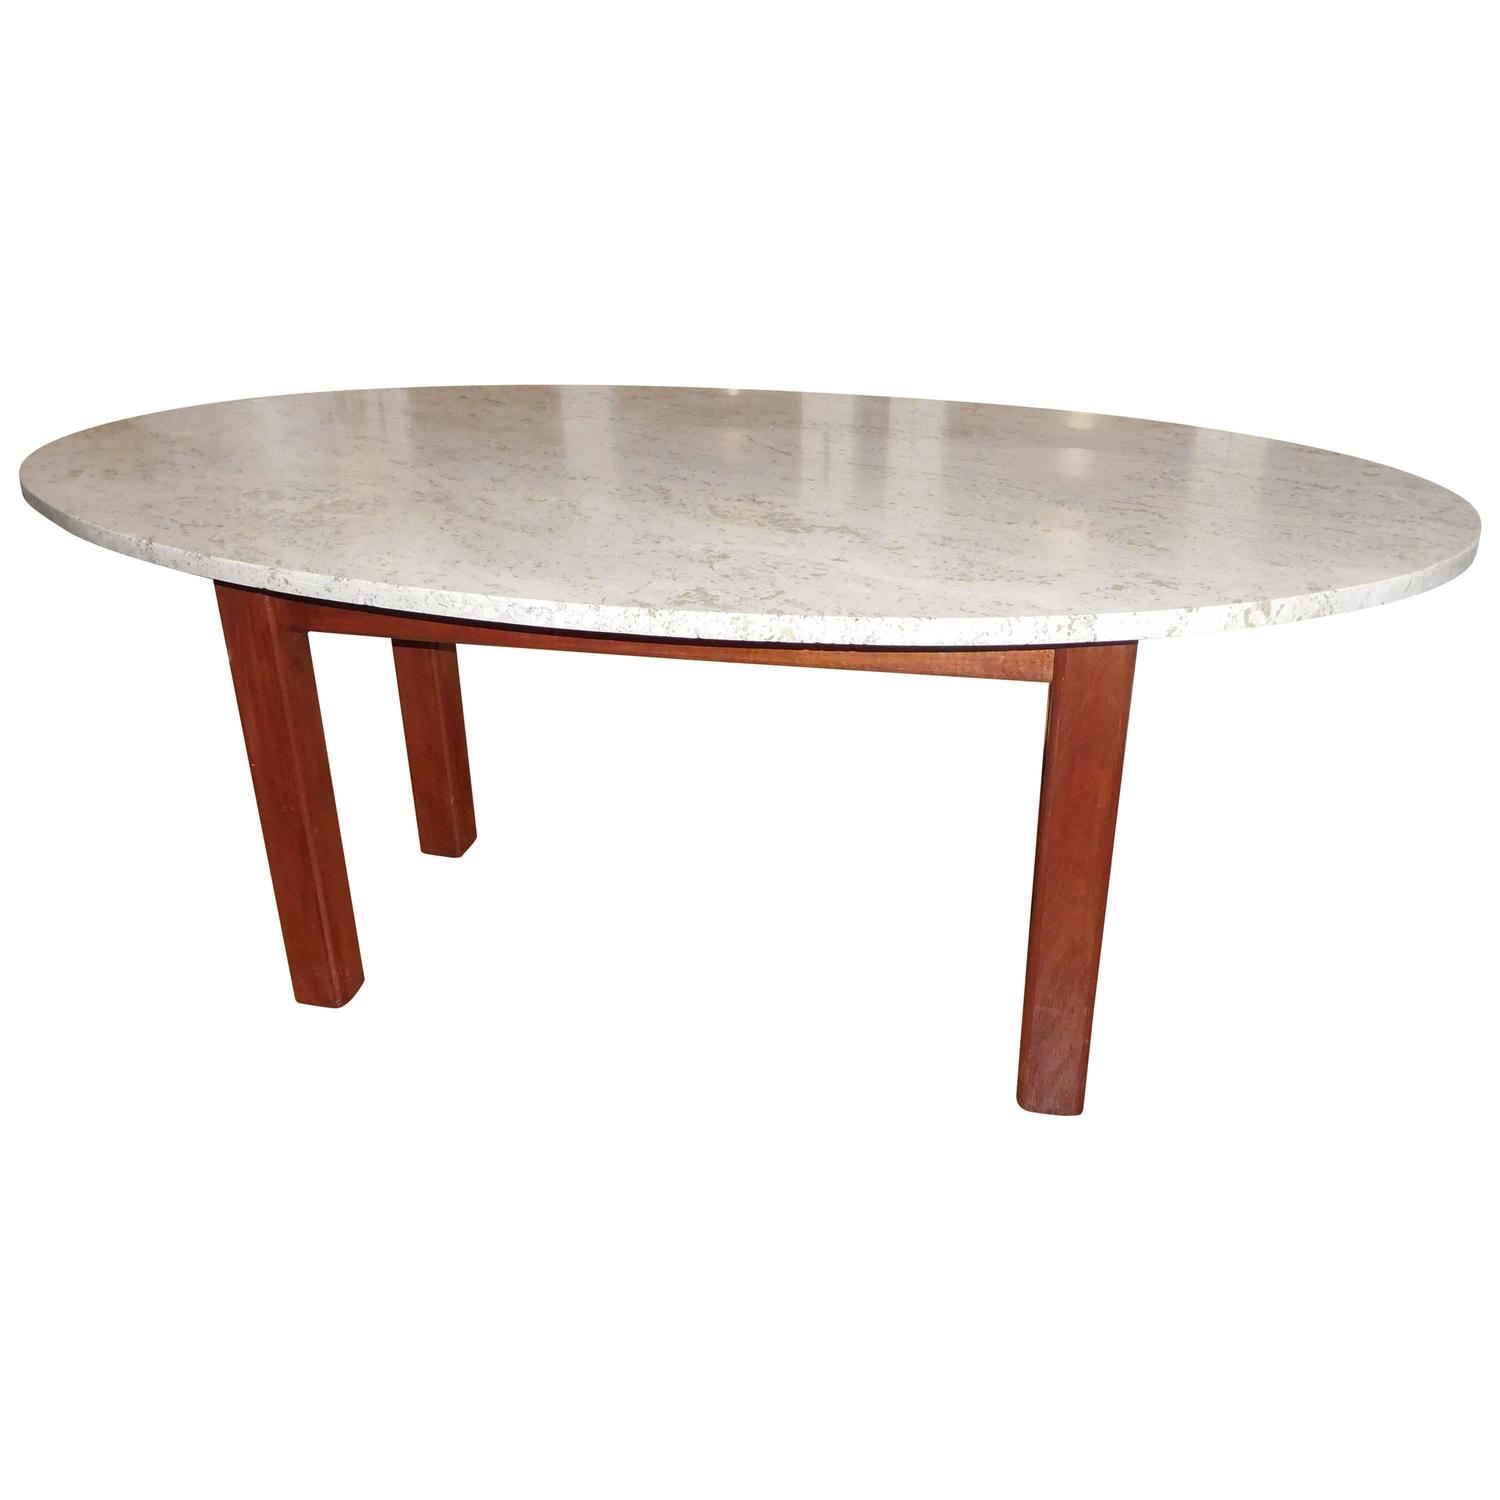 Mid Century Oval Travertine and Wood Coffee Table For Sale at 1stdibs